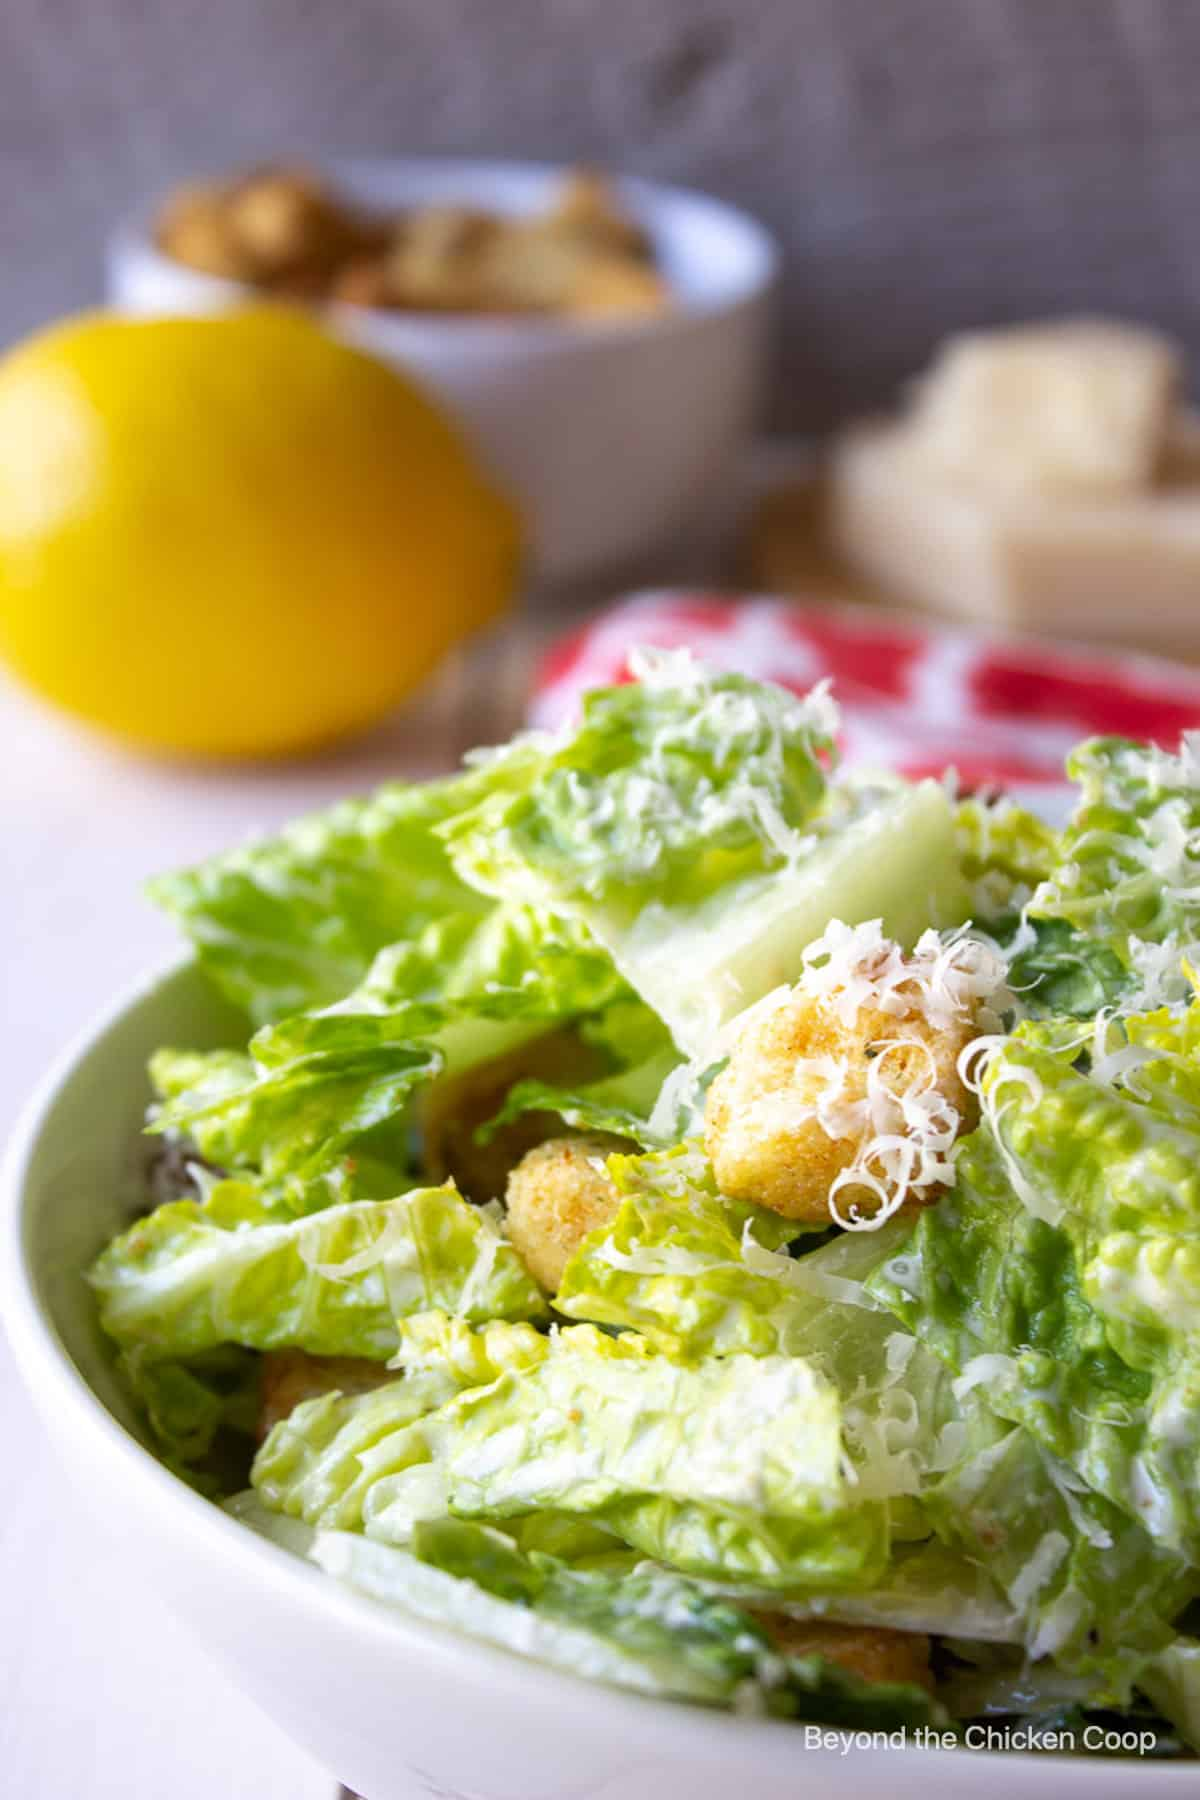 A green salad topped with cheese and croutons in a white bowl.